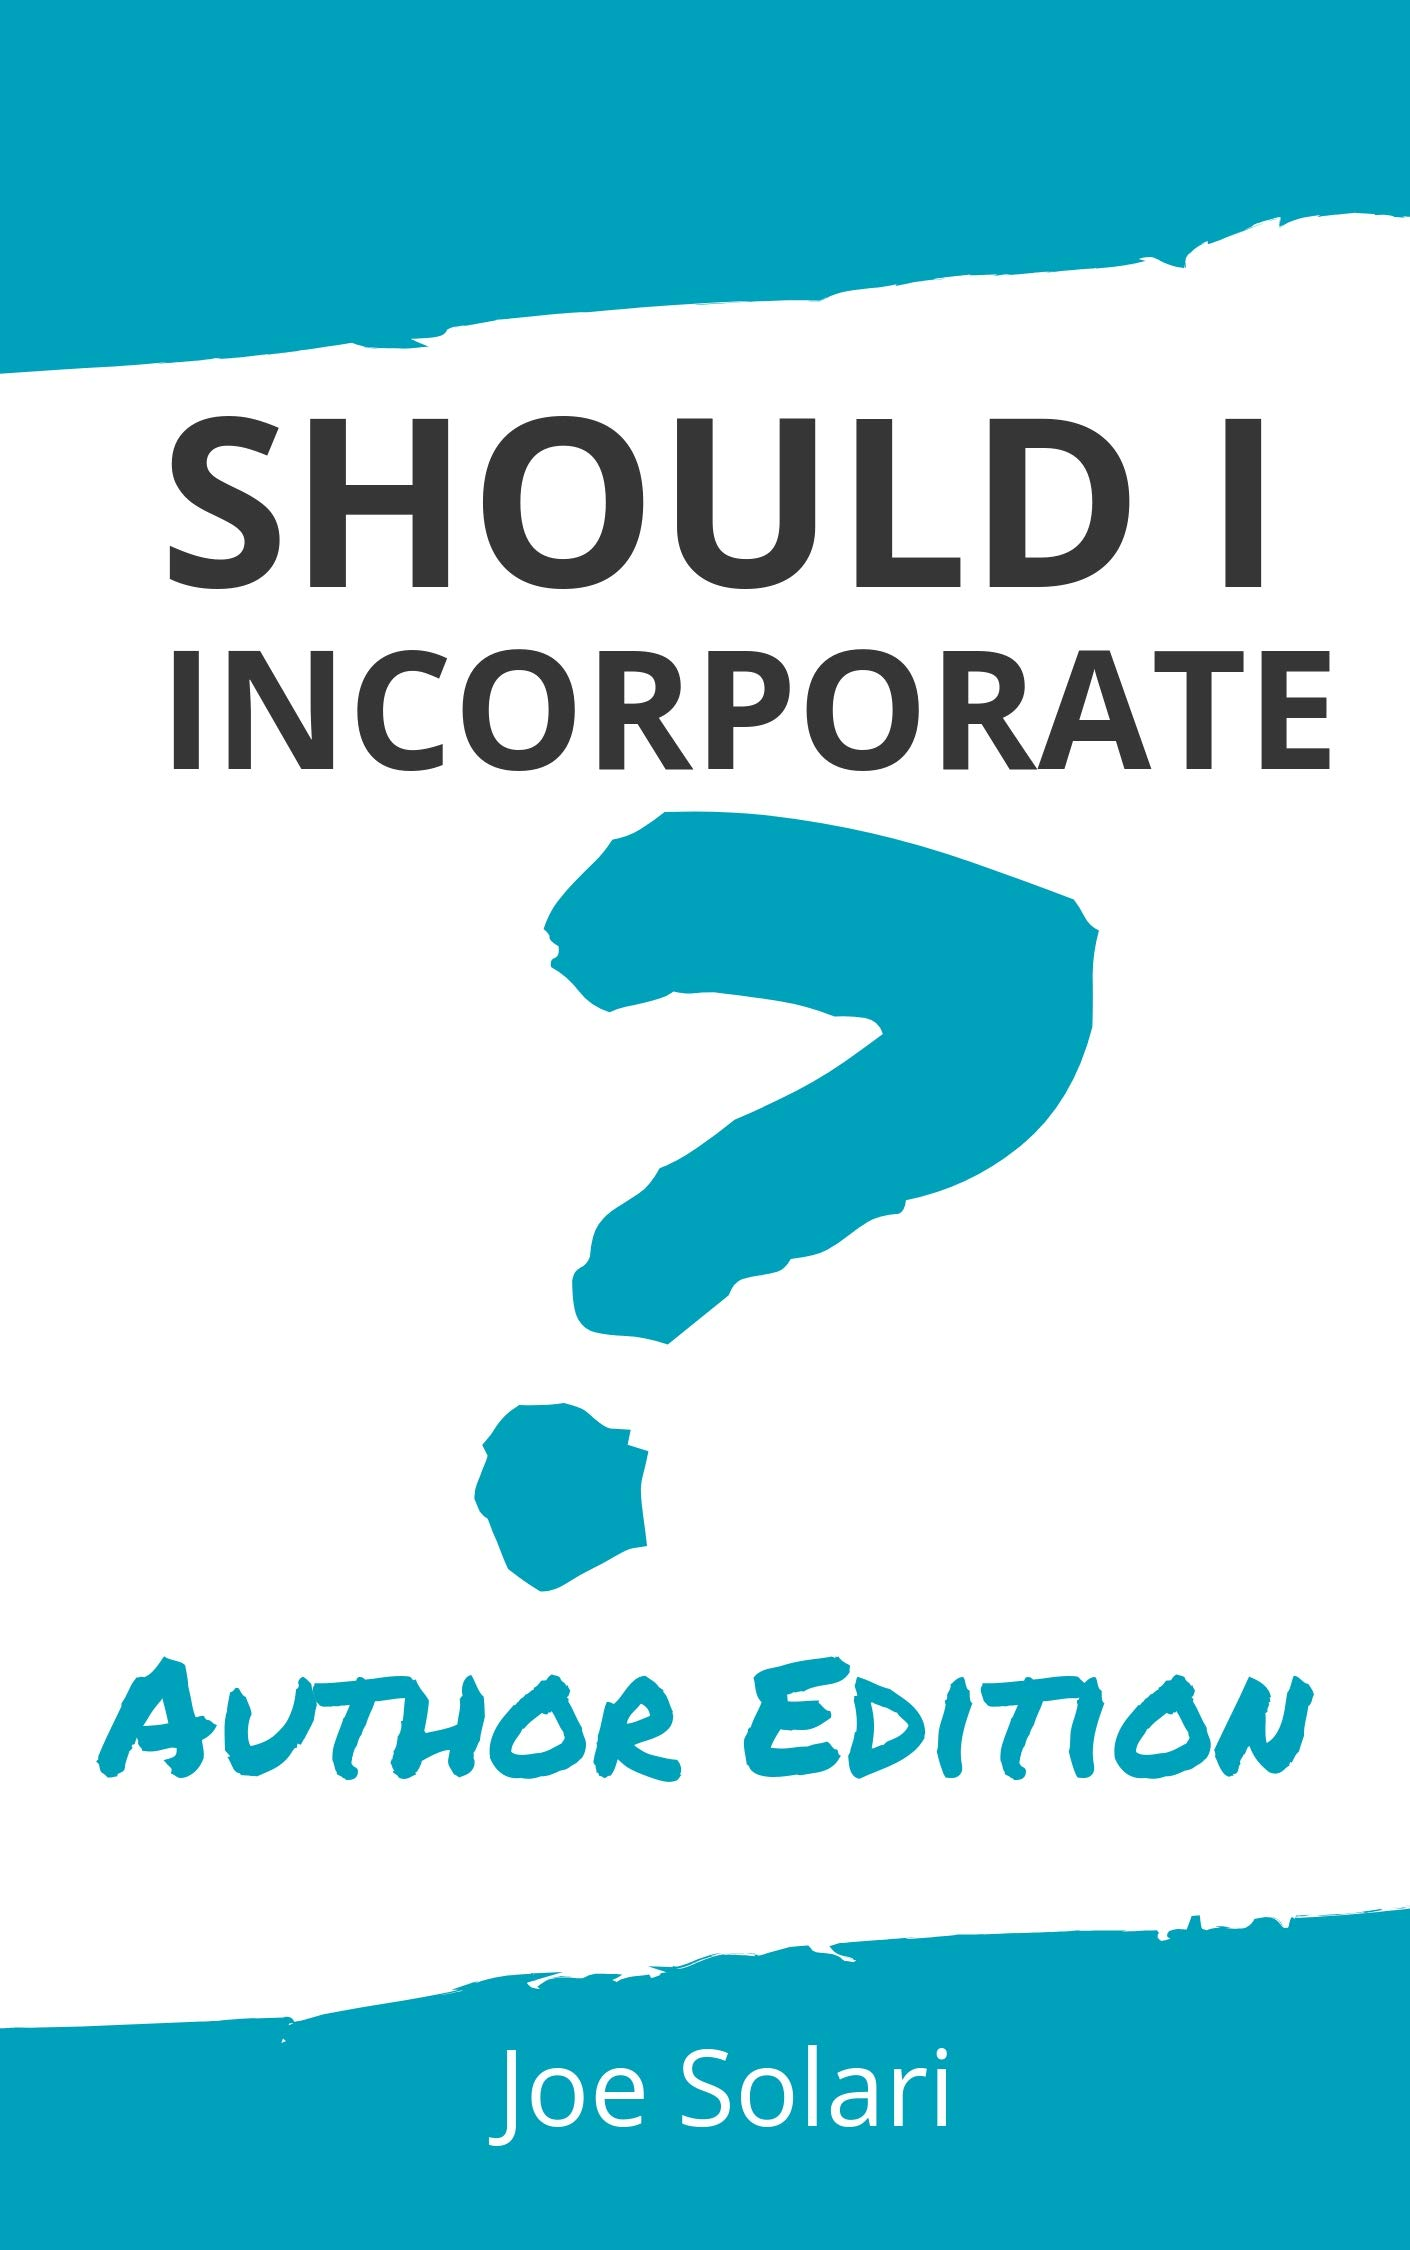 Should I Incorporate? Author Edition: How and when to set up your publishing company (The Author Entrepreneur Book 1)